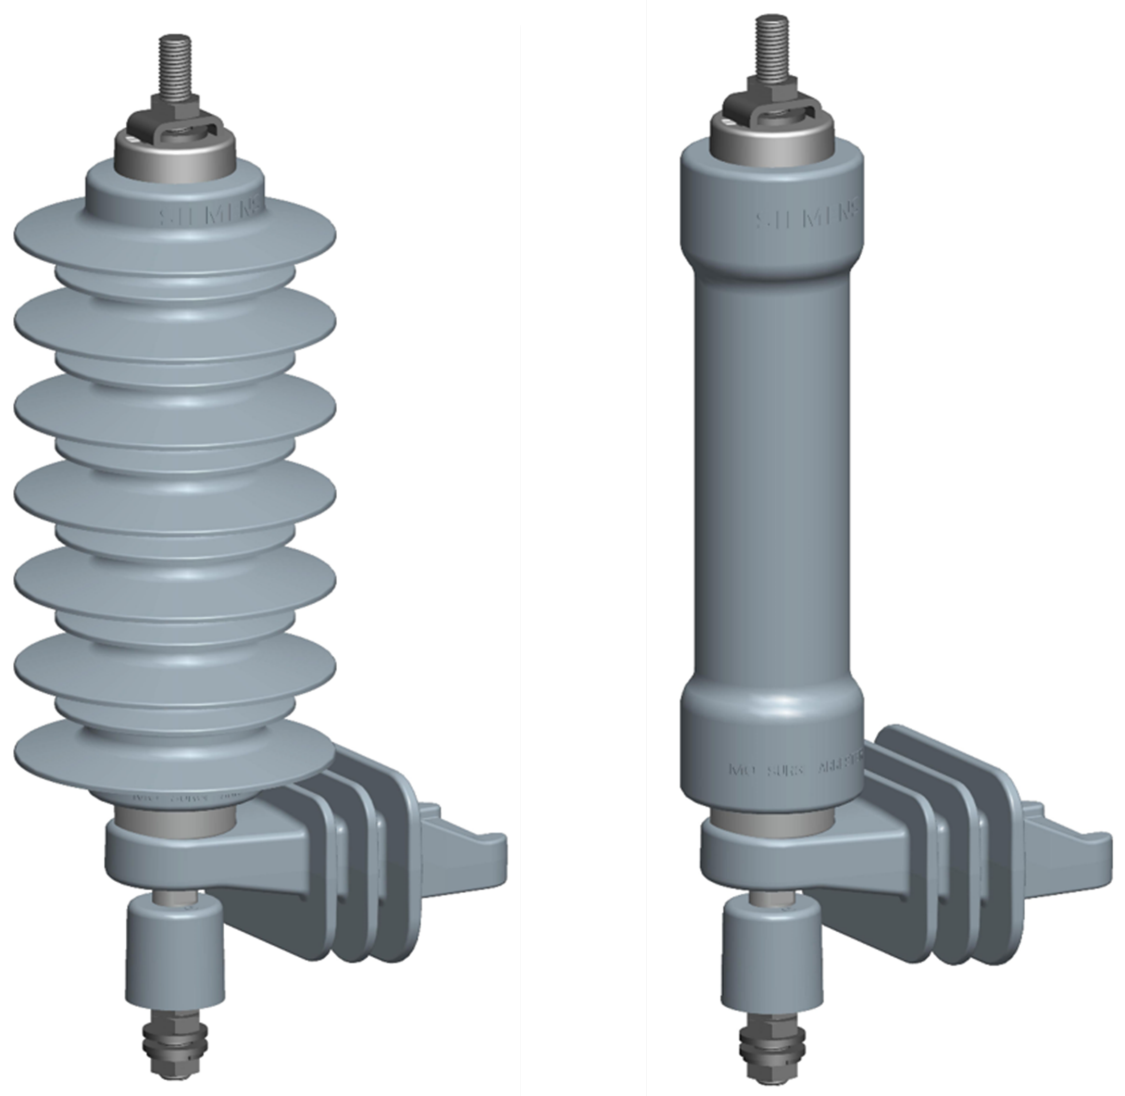 Medium-voltage surge arresters